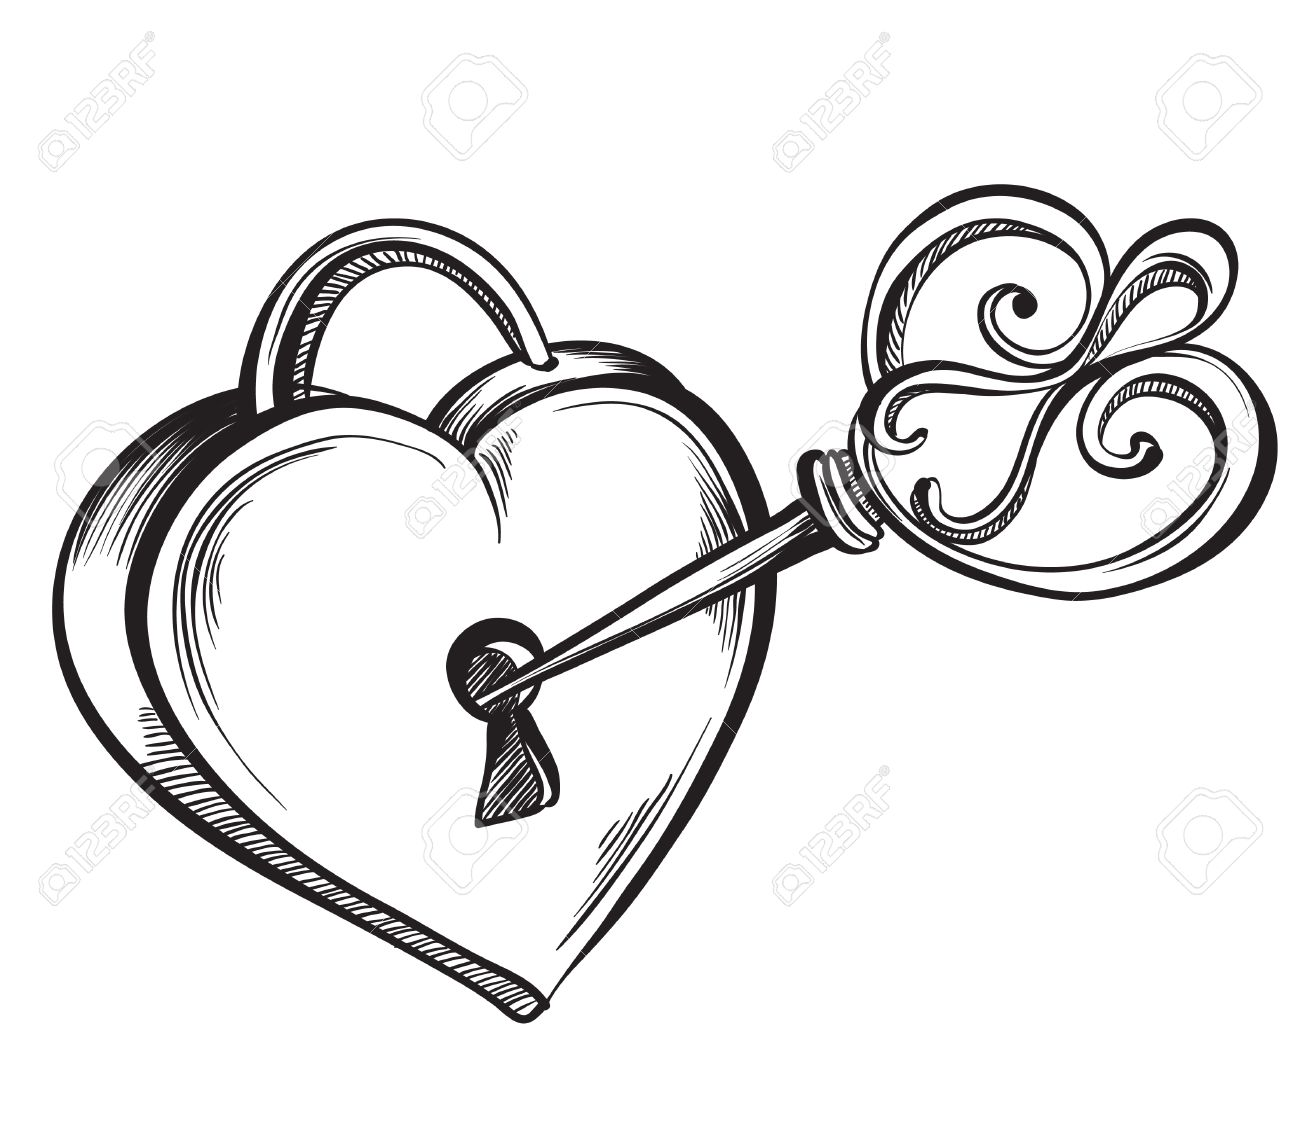 Valentine heart. Key lock in the shape of a heart. Hand drawn sketch style, vector illustration. - 53584971